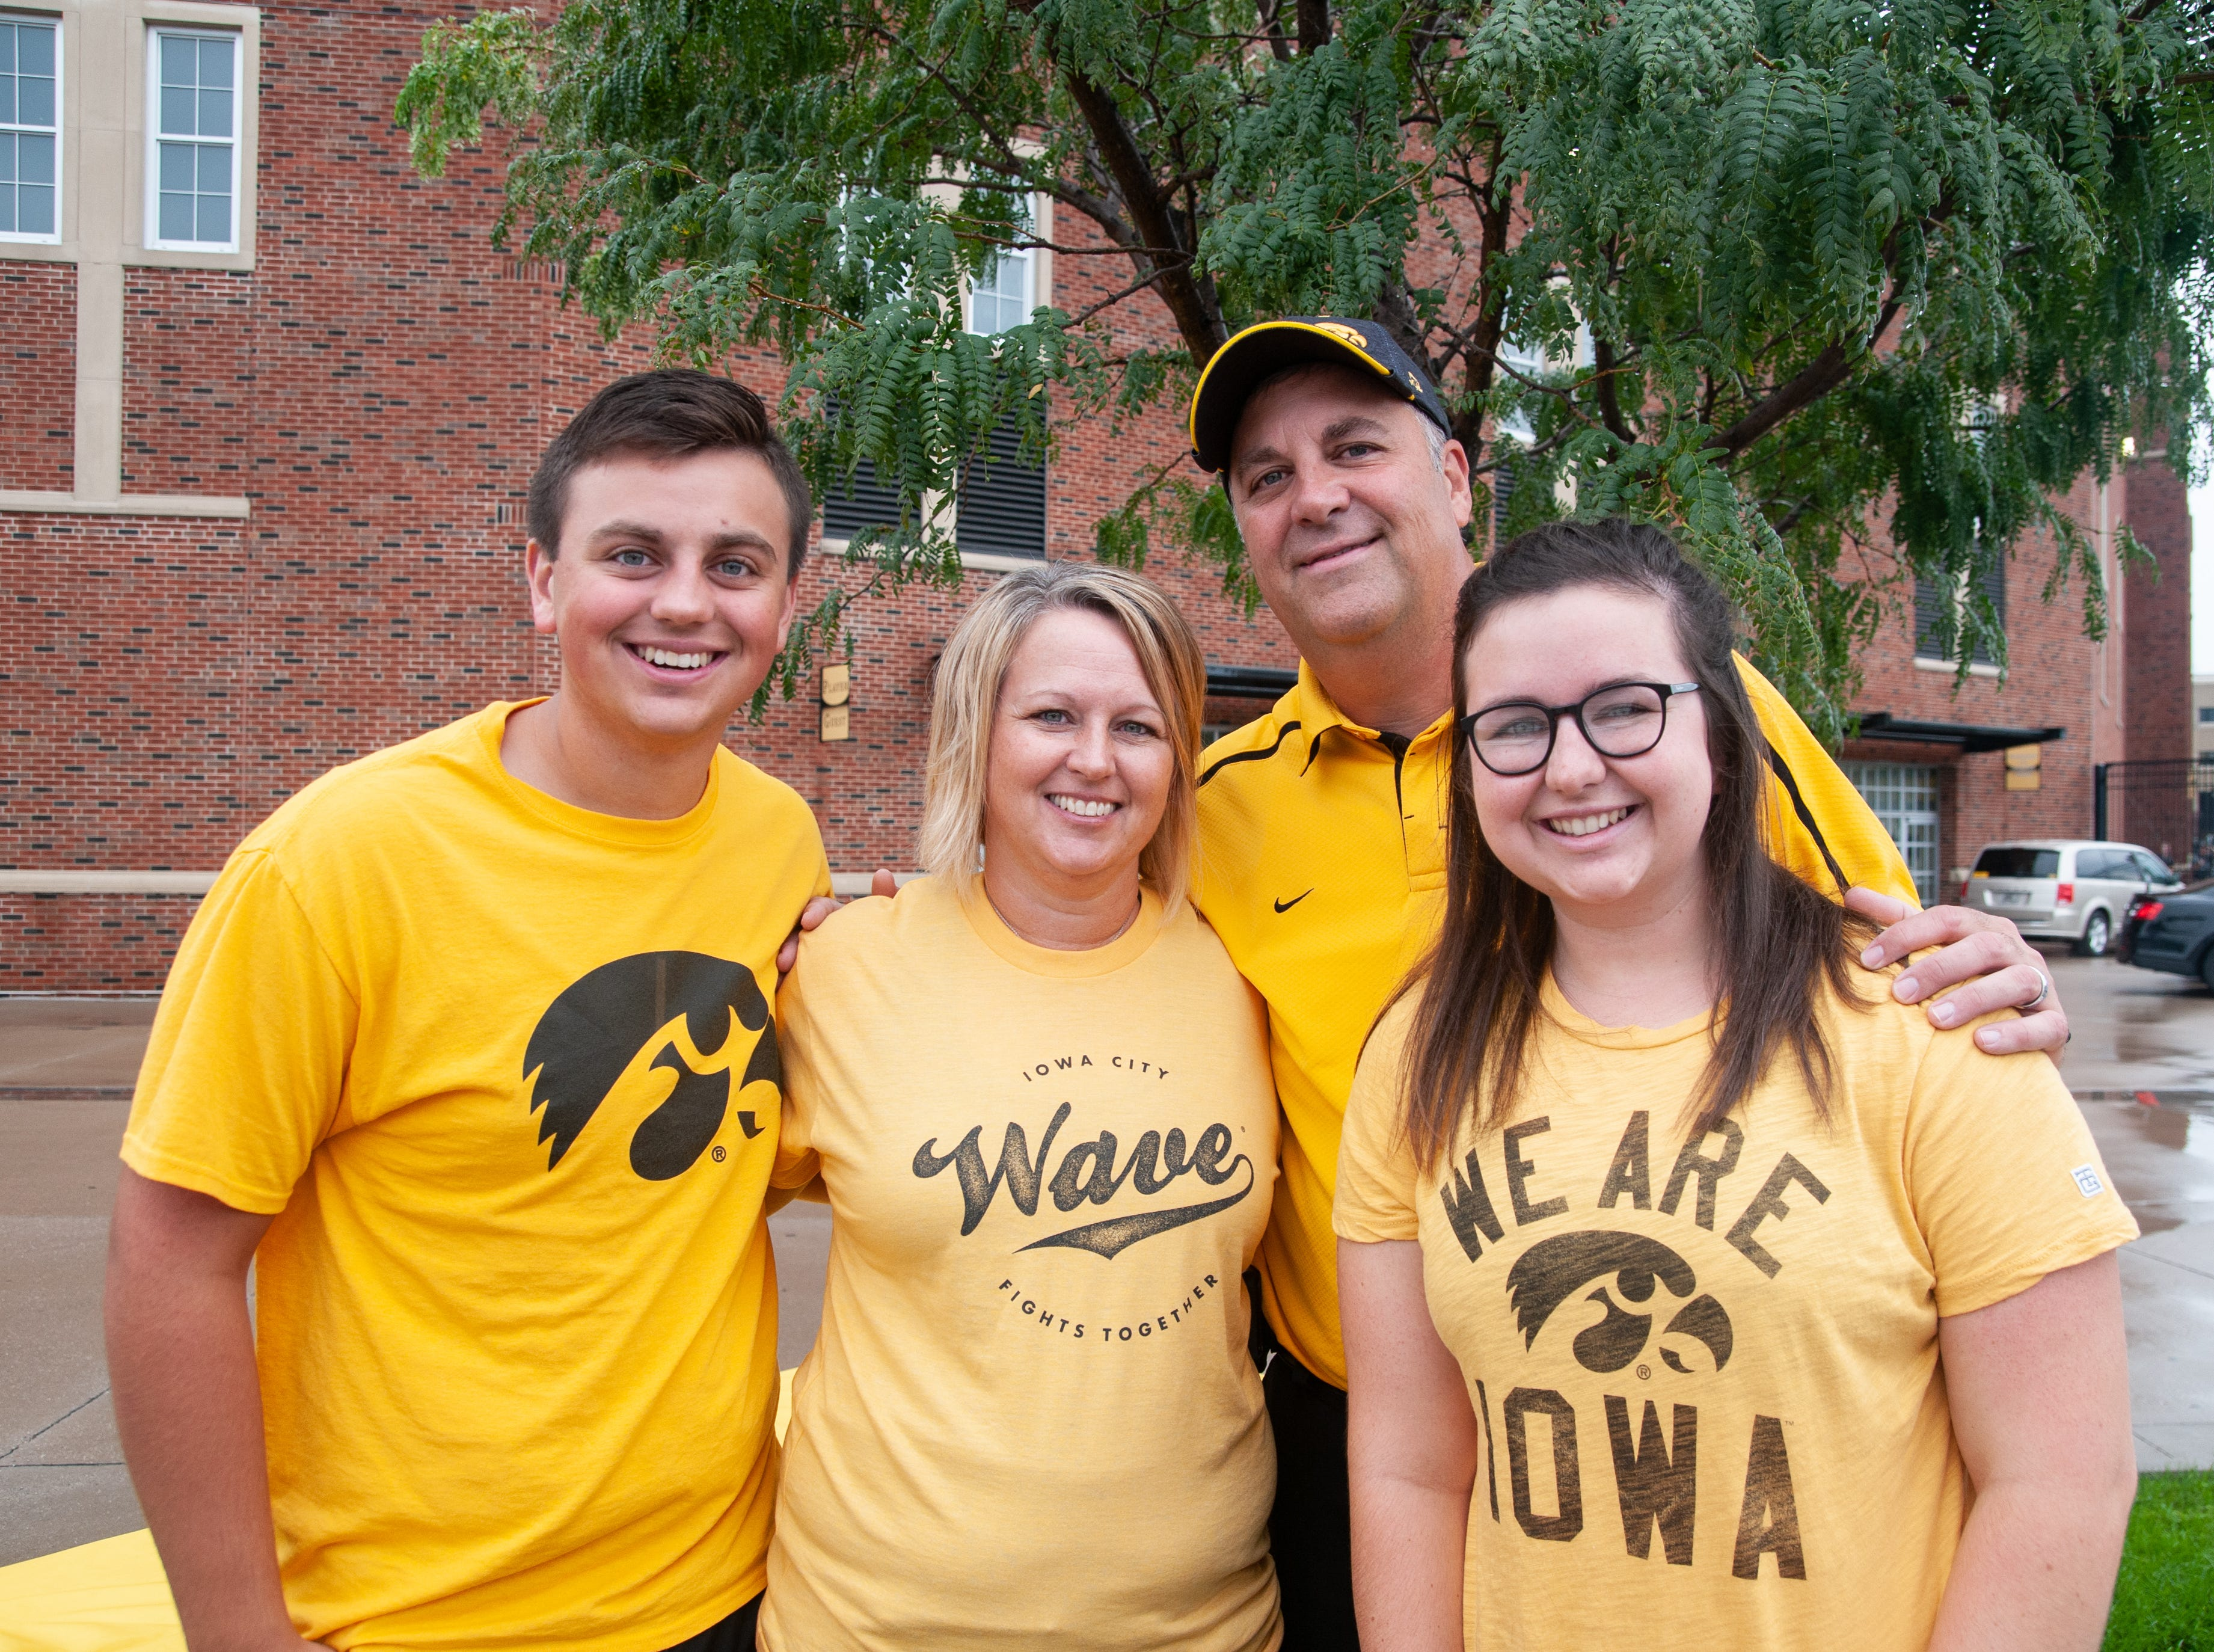 Nate, 18, (left), Cathy, 46, Todd, 47, and Kelsey Ettleman Atkins, 22, Saturday, Sept. 1, 2018, while tailgating before the Iowa game against Northern Illinois in Iowa City.